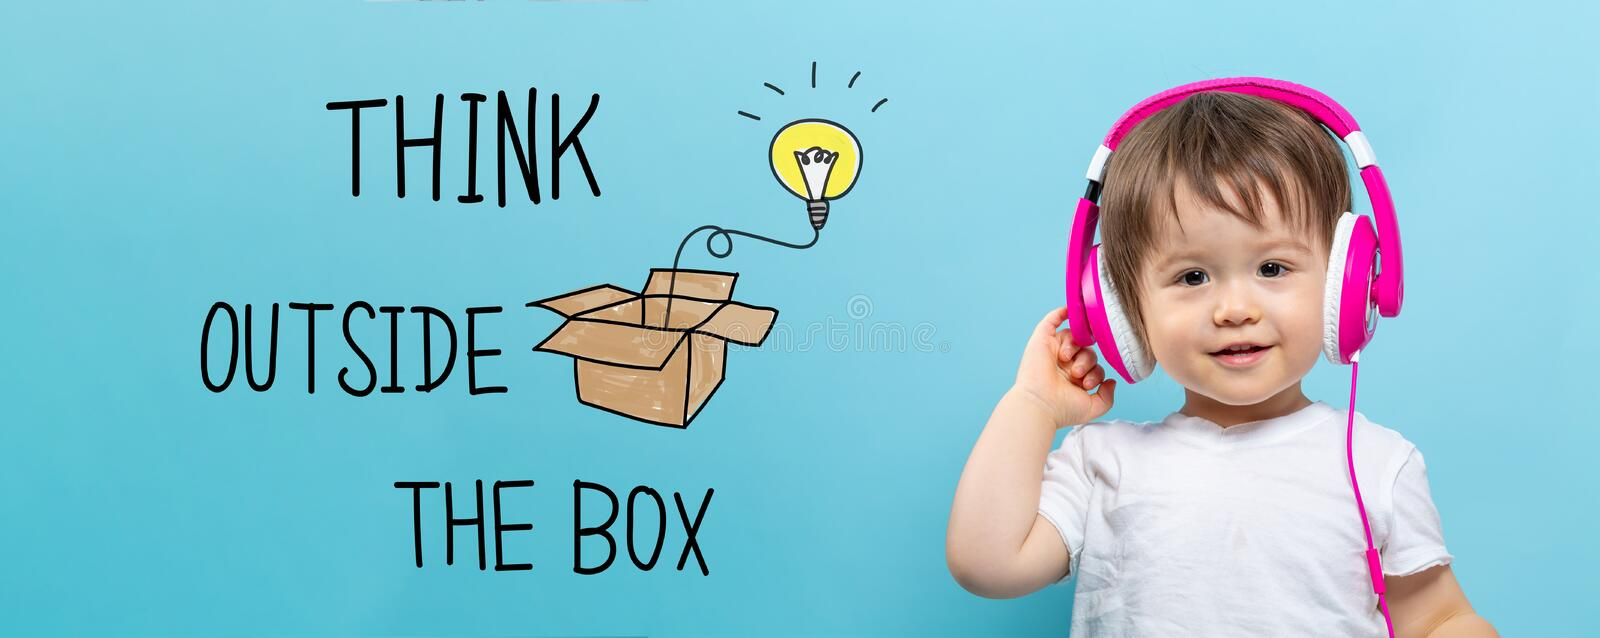 Think outside the box with toddler boy with headphones royalty free illustration